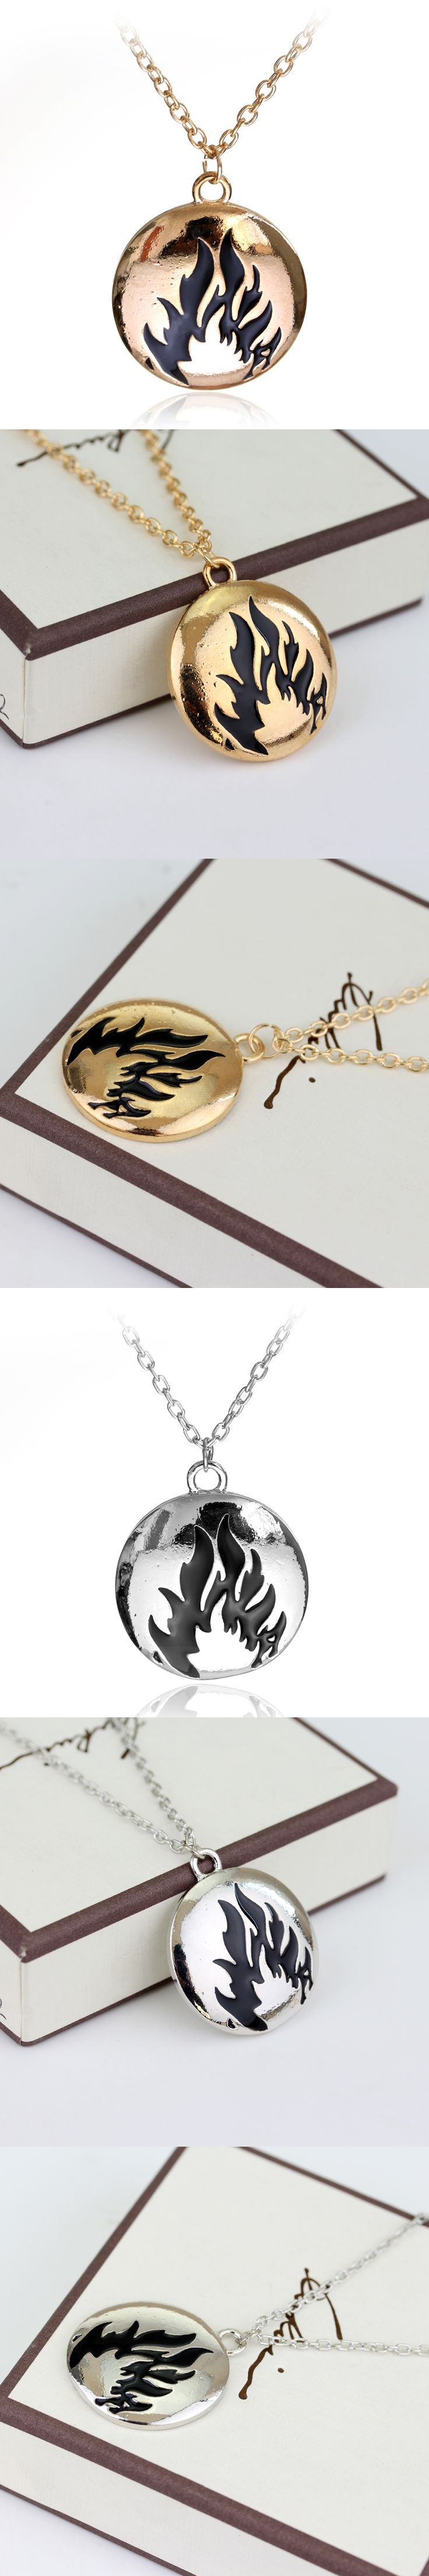 2 Style Fashion Jewelry Newest Movie Jewelry Divergent Necklace Dauntless Amity Abnegation Candor Pendant Necklaces -30